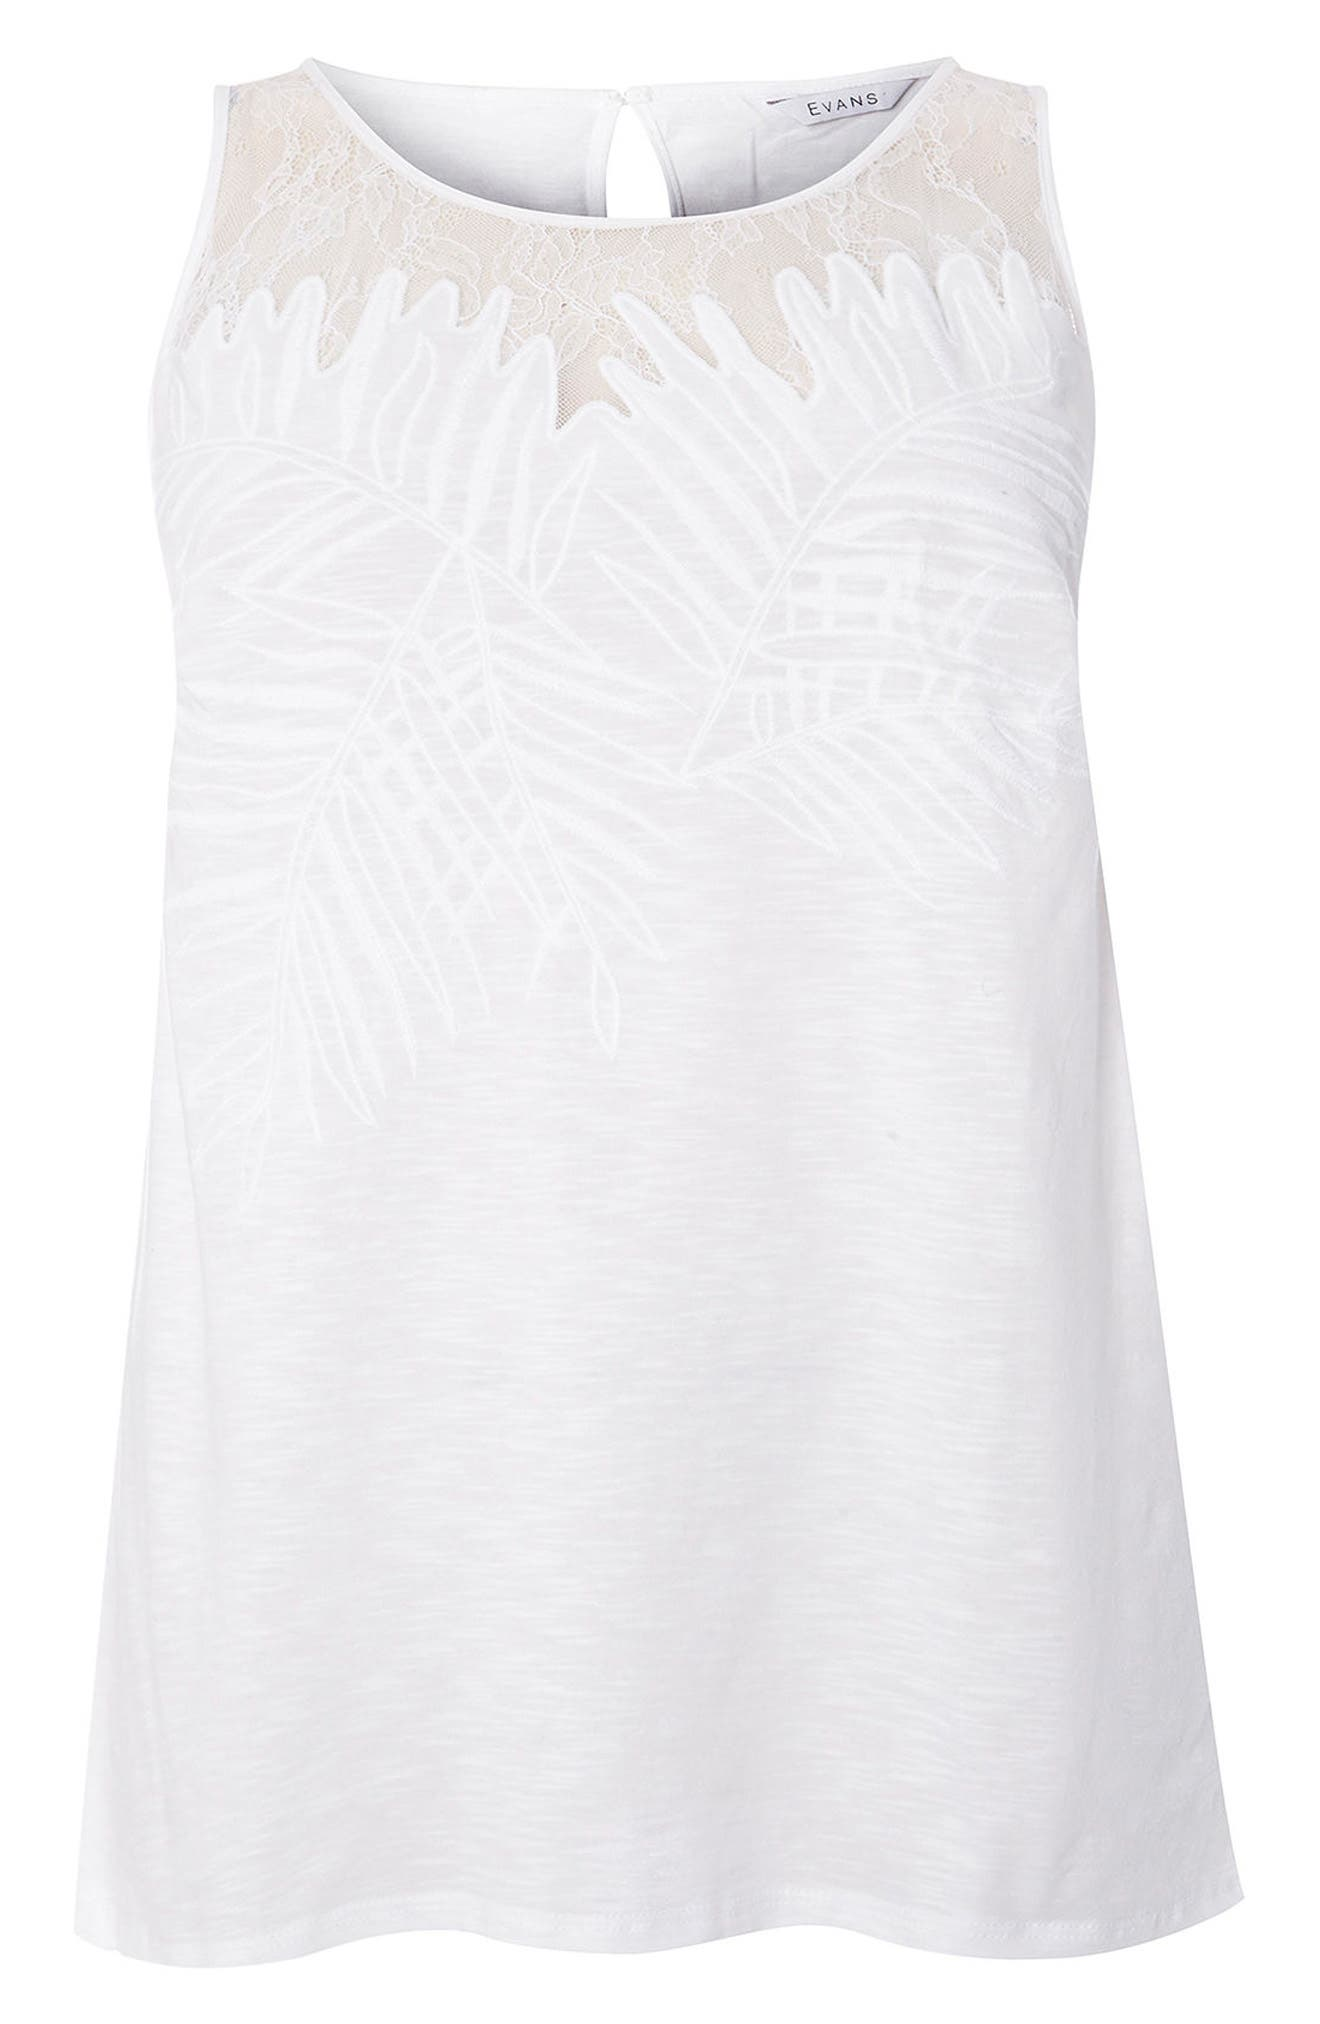 EVANS Embroidered Mesh Top